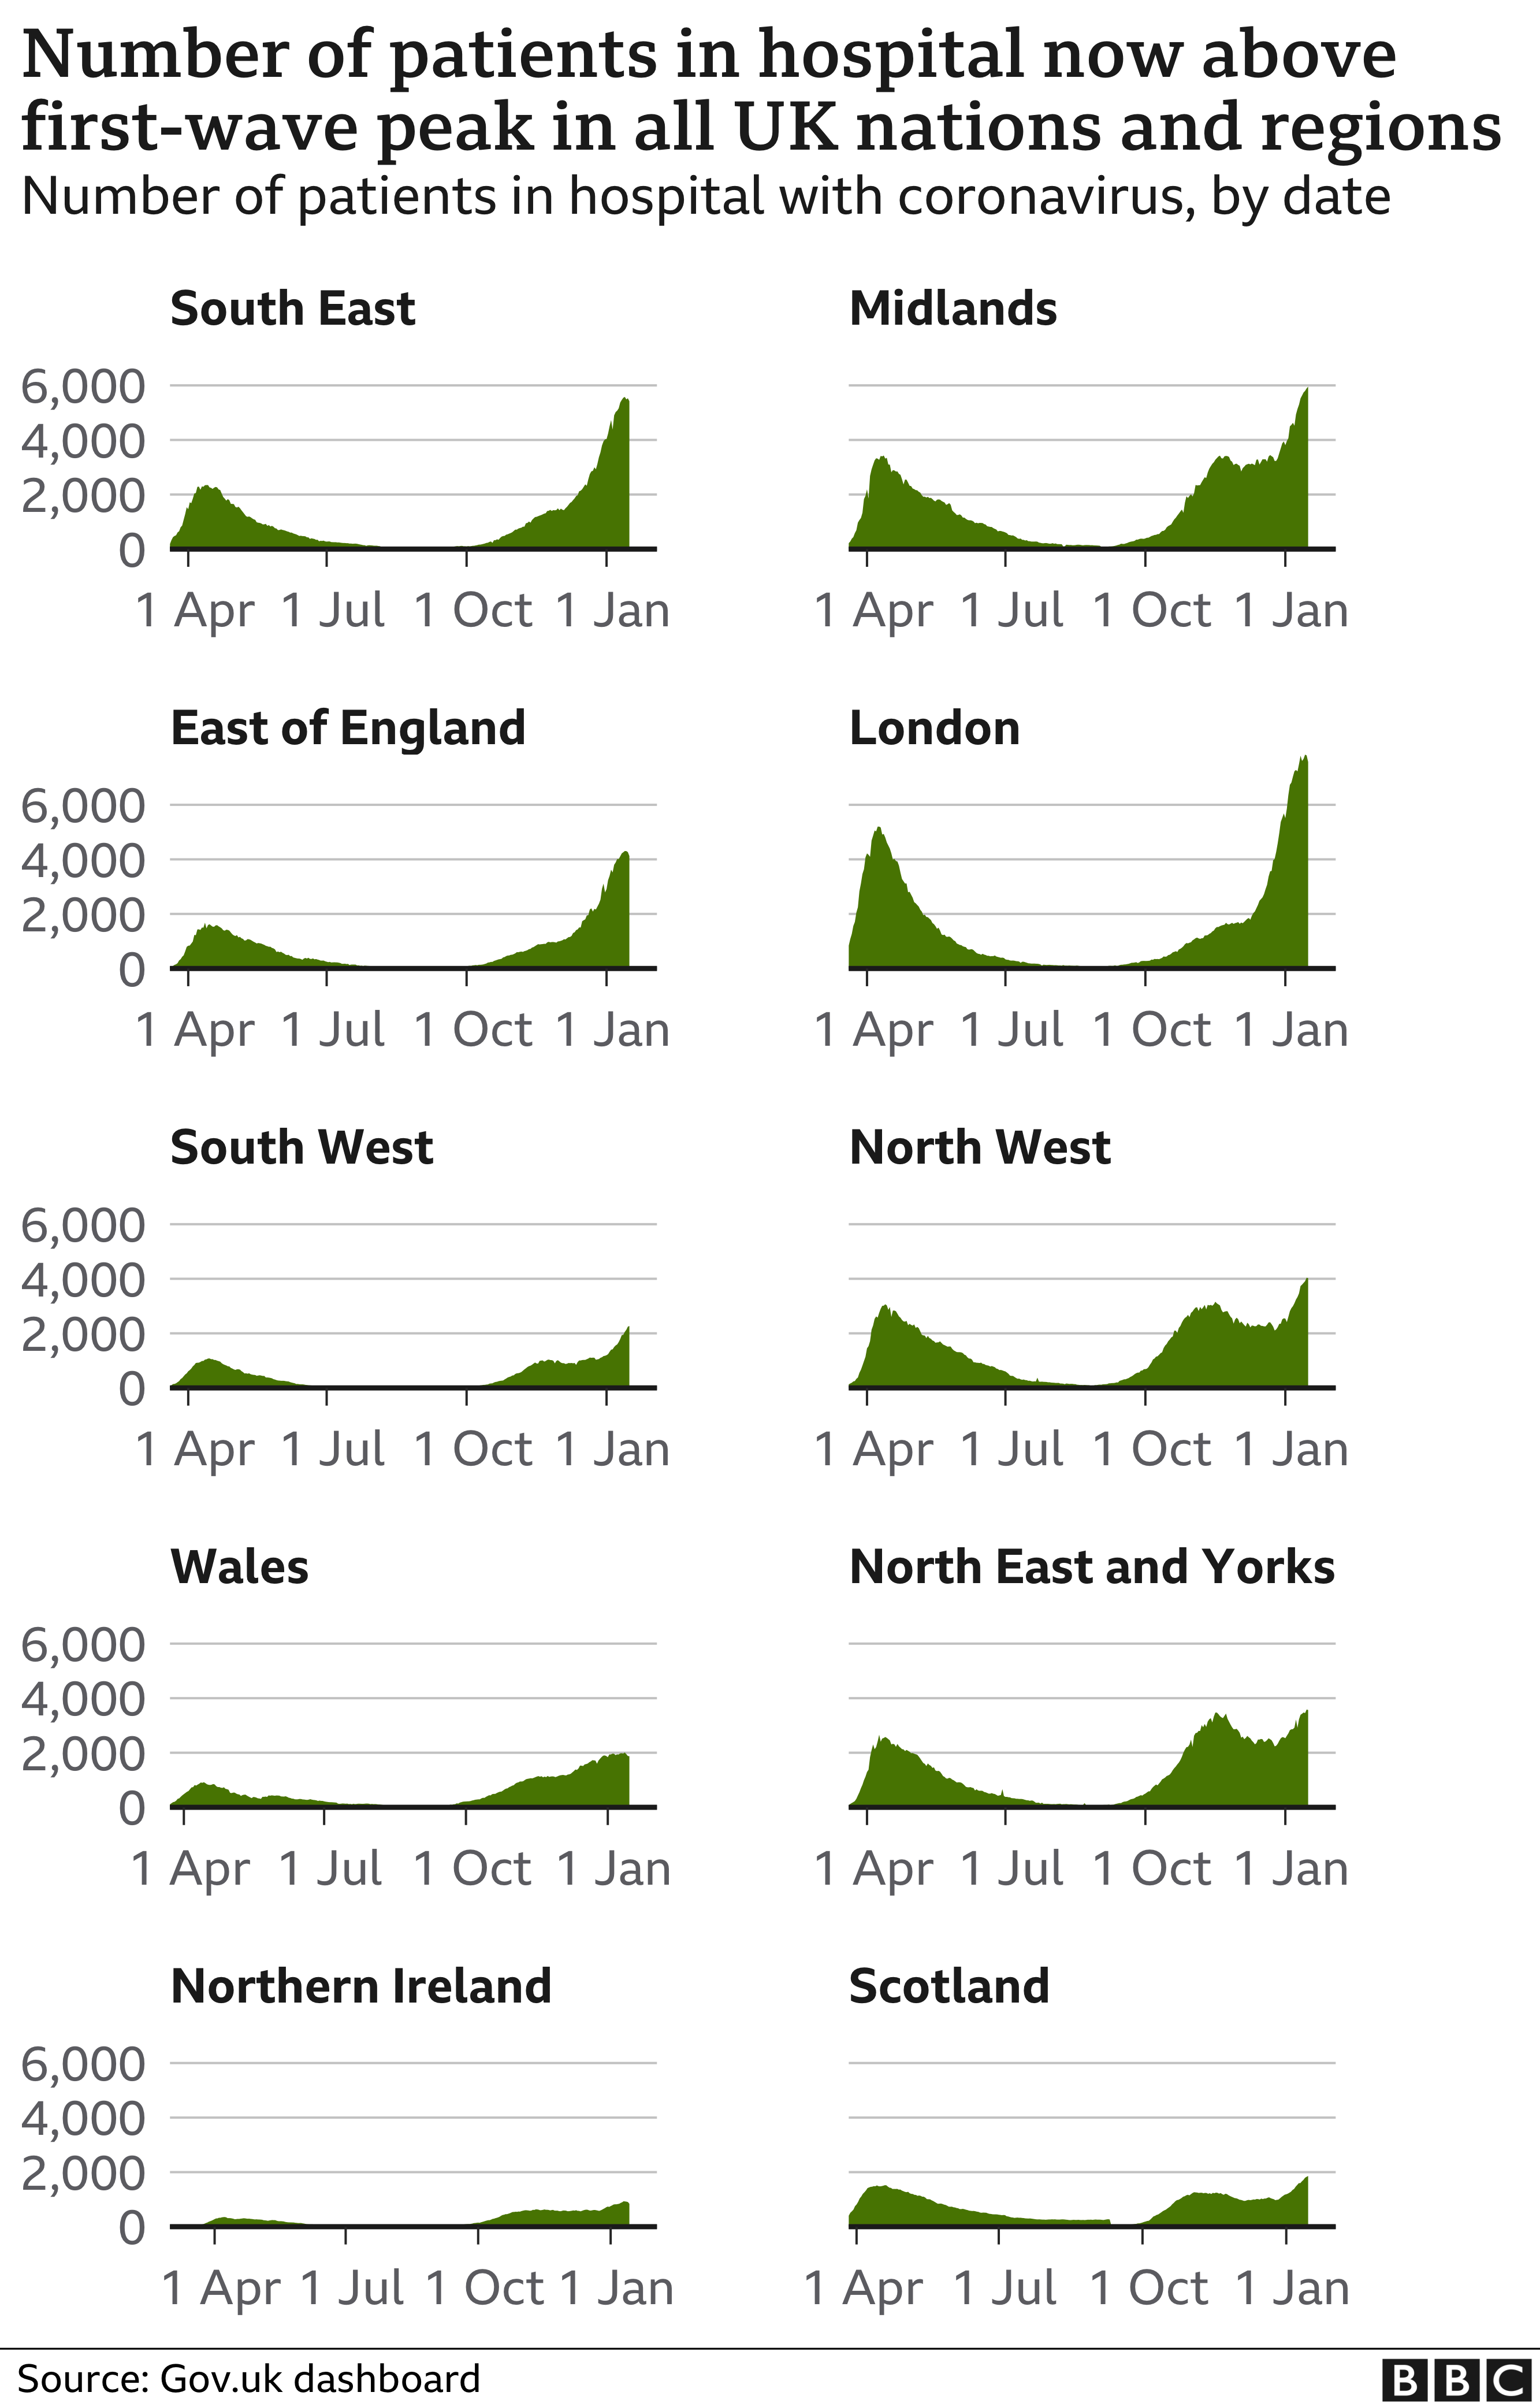 Chart showing the number of patients in hospital in the nations and regions of the UK. Updated 17 Jan.